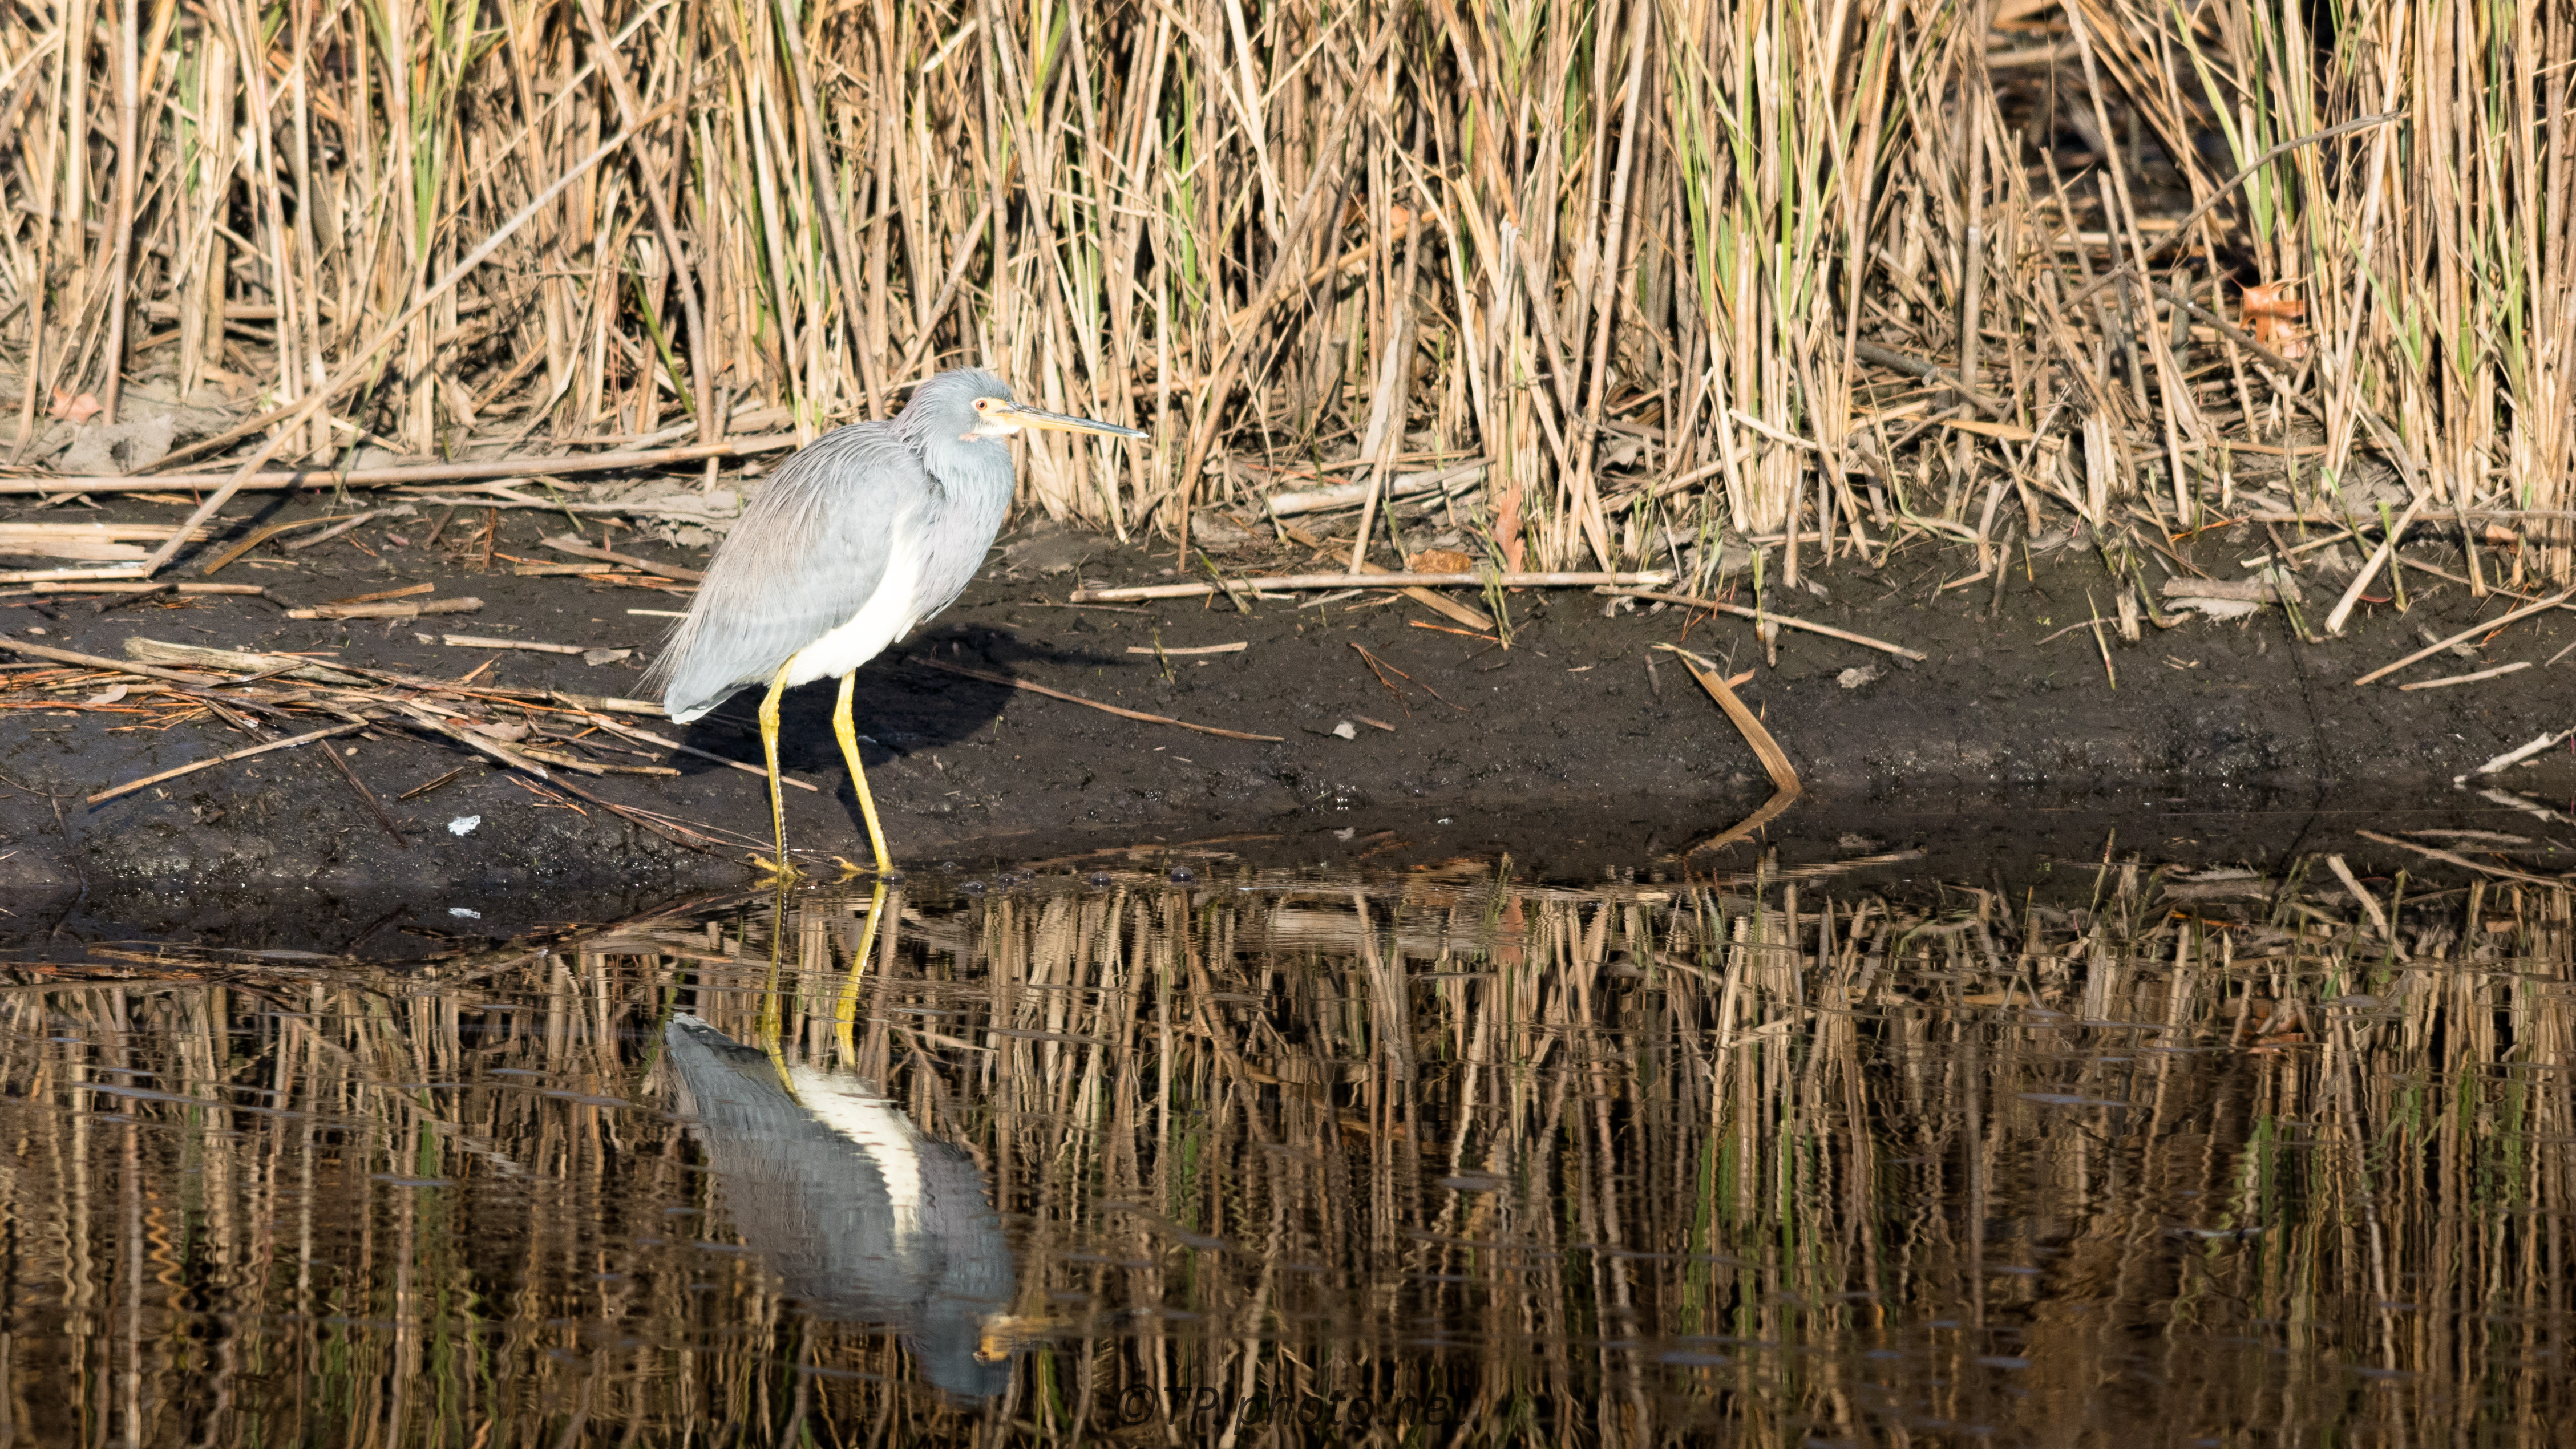 Tricolored Heron By The Reeds